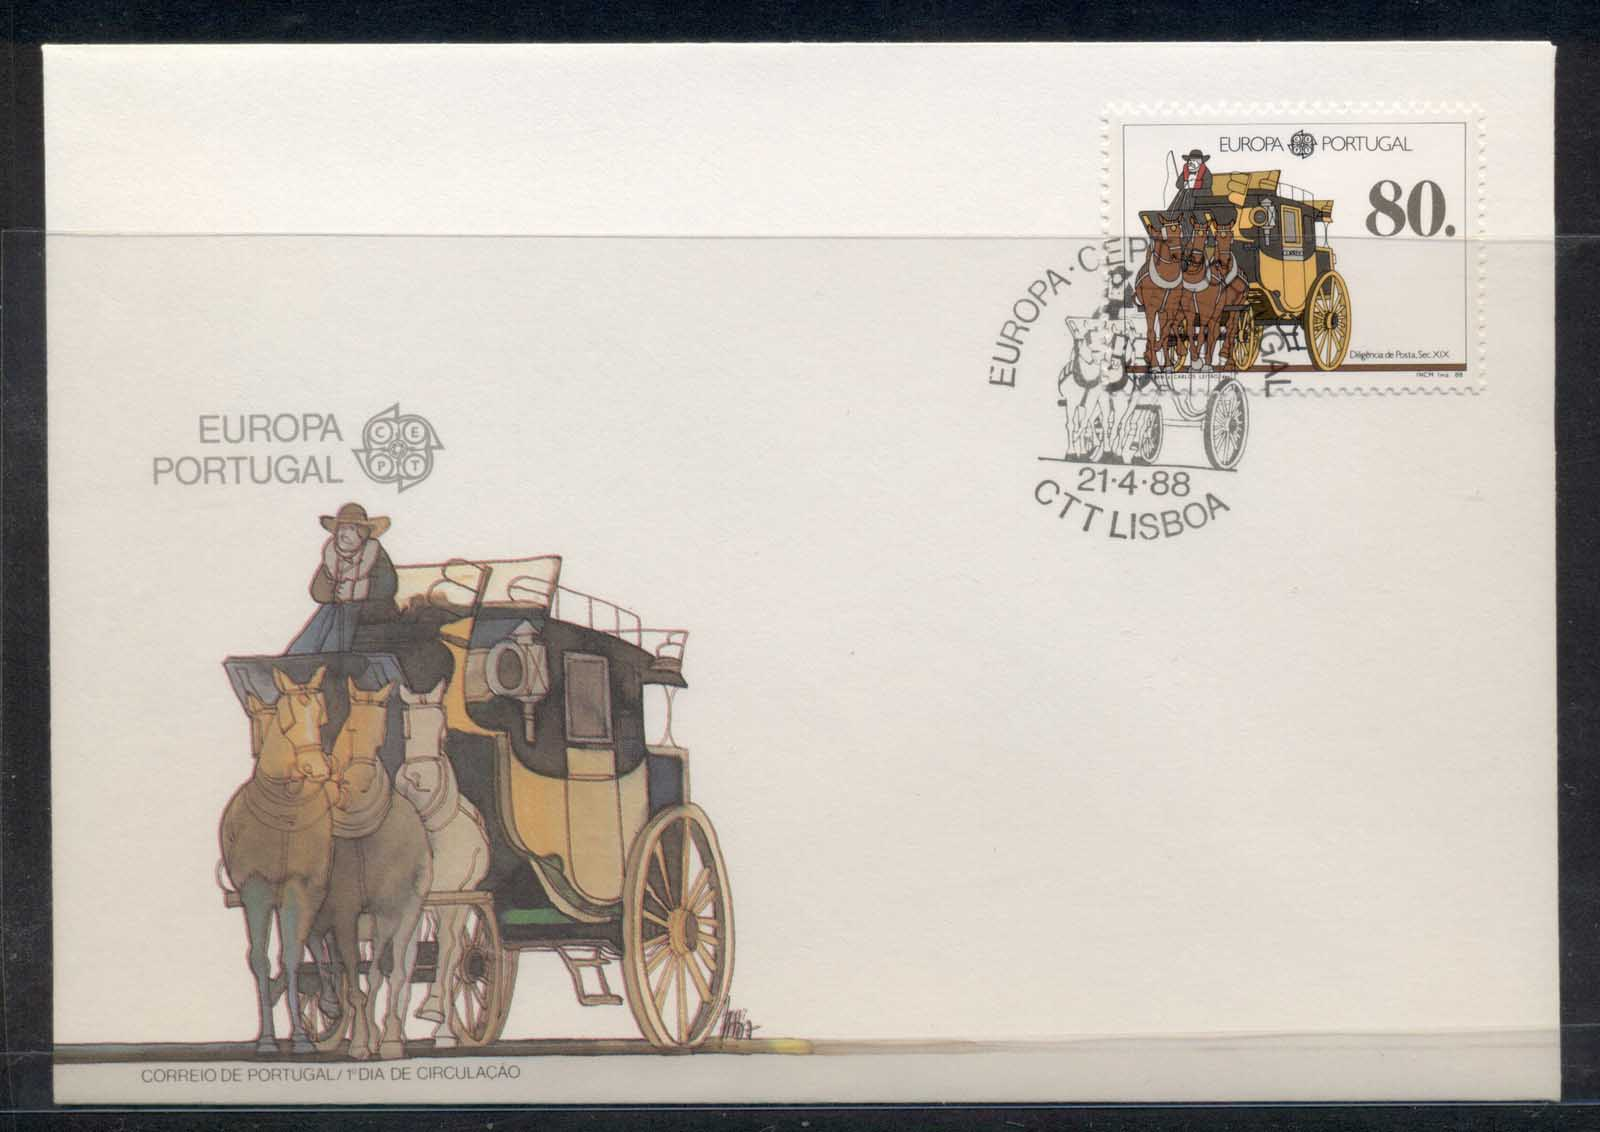 Portugal 1988 Europa Transport & Communication FDC